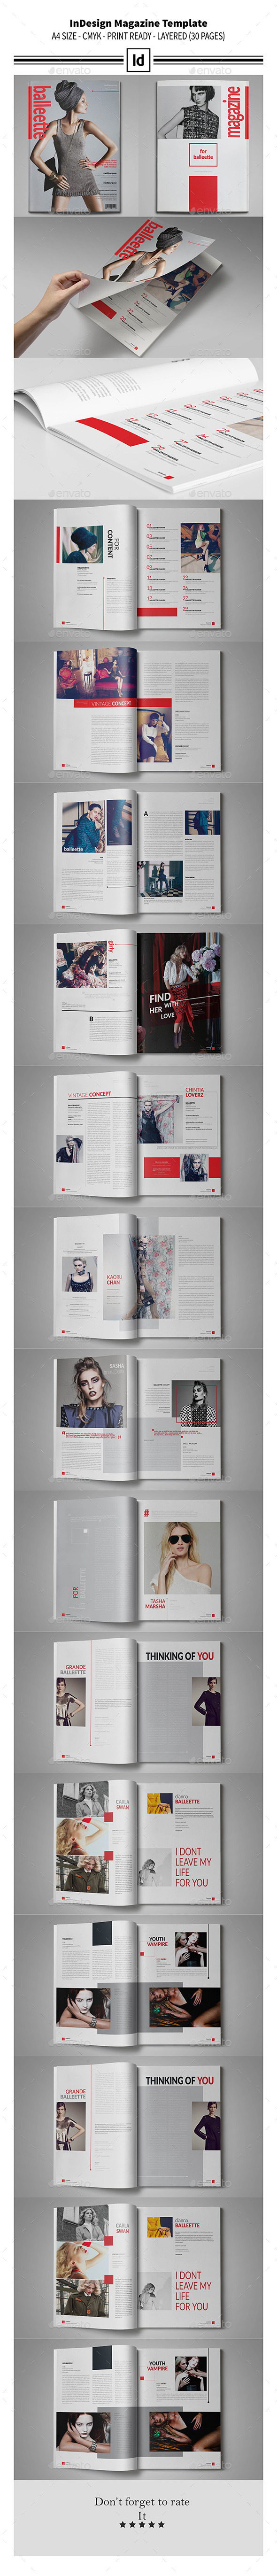 GraphicRiver Multipurpose InDesign Magazine Template 11170959